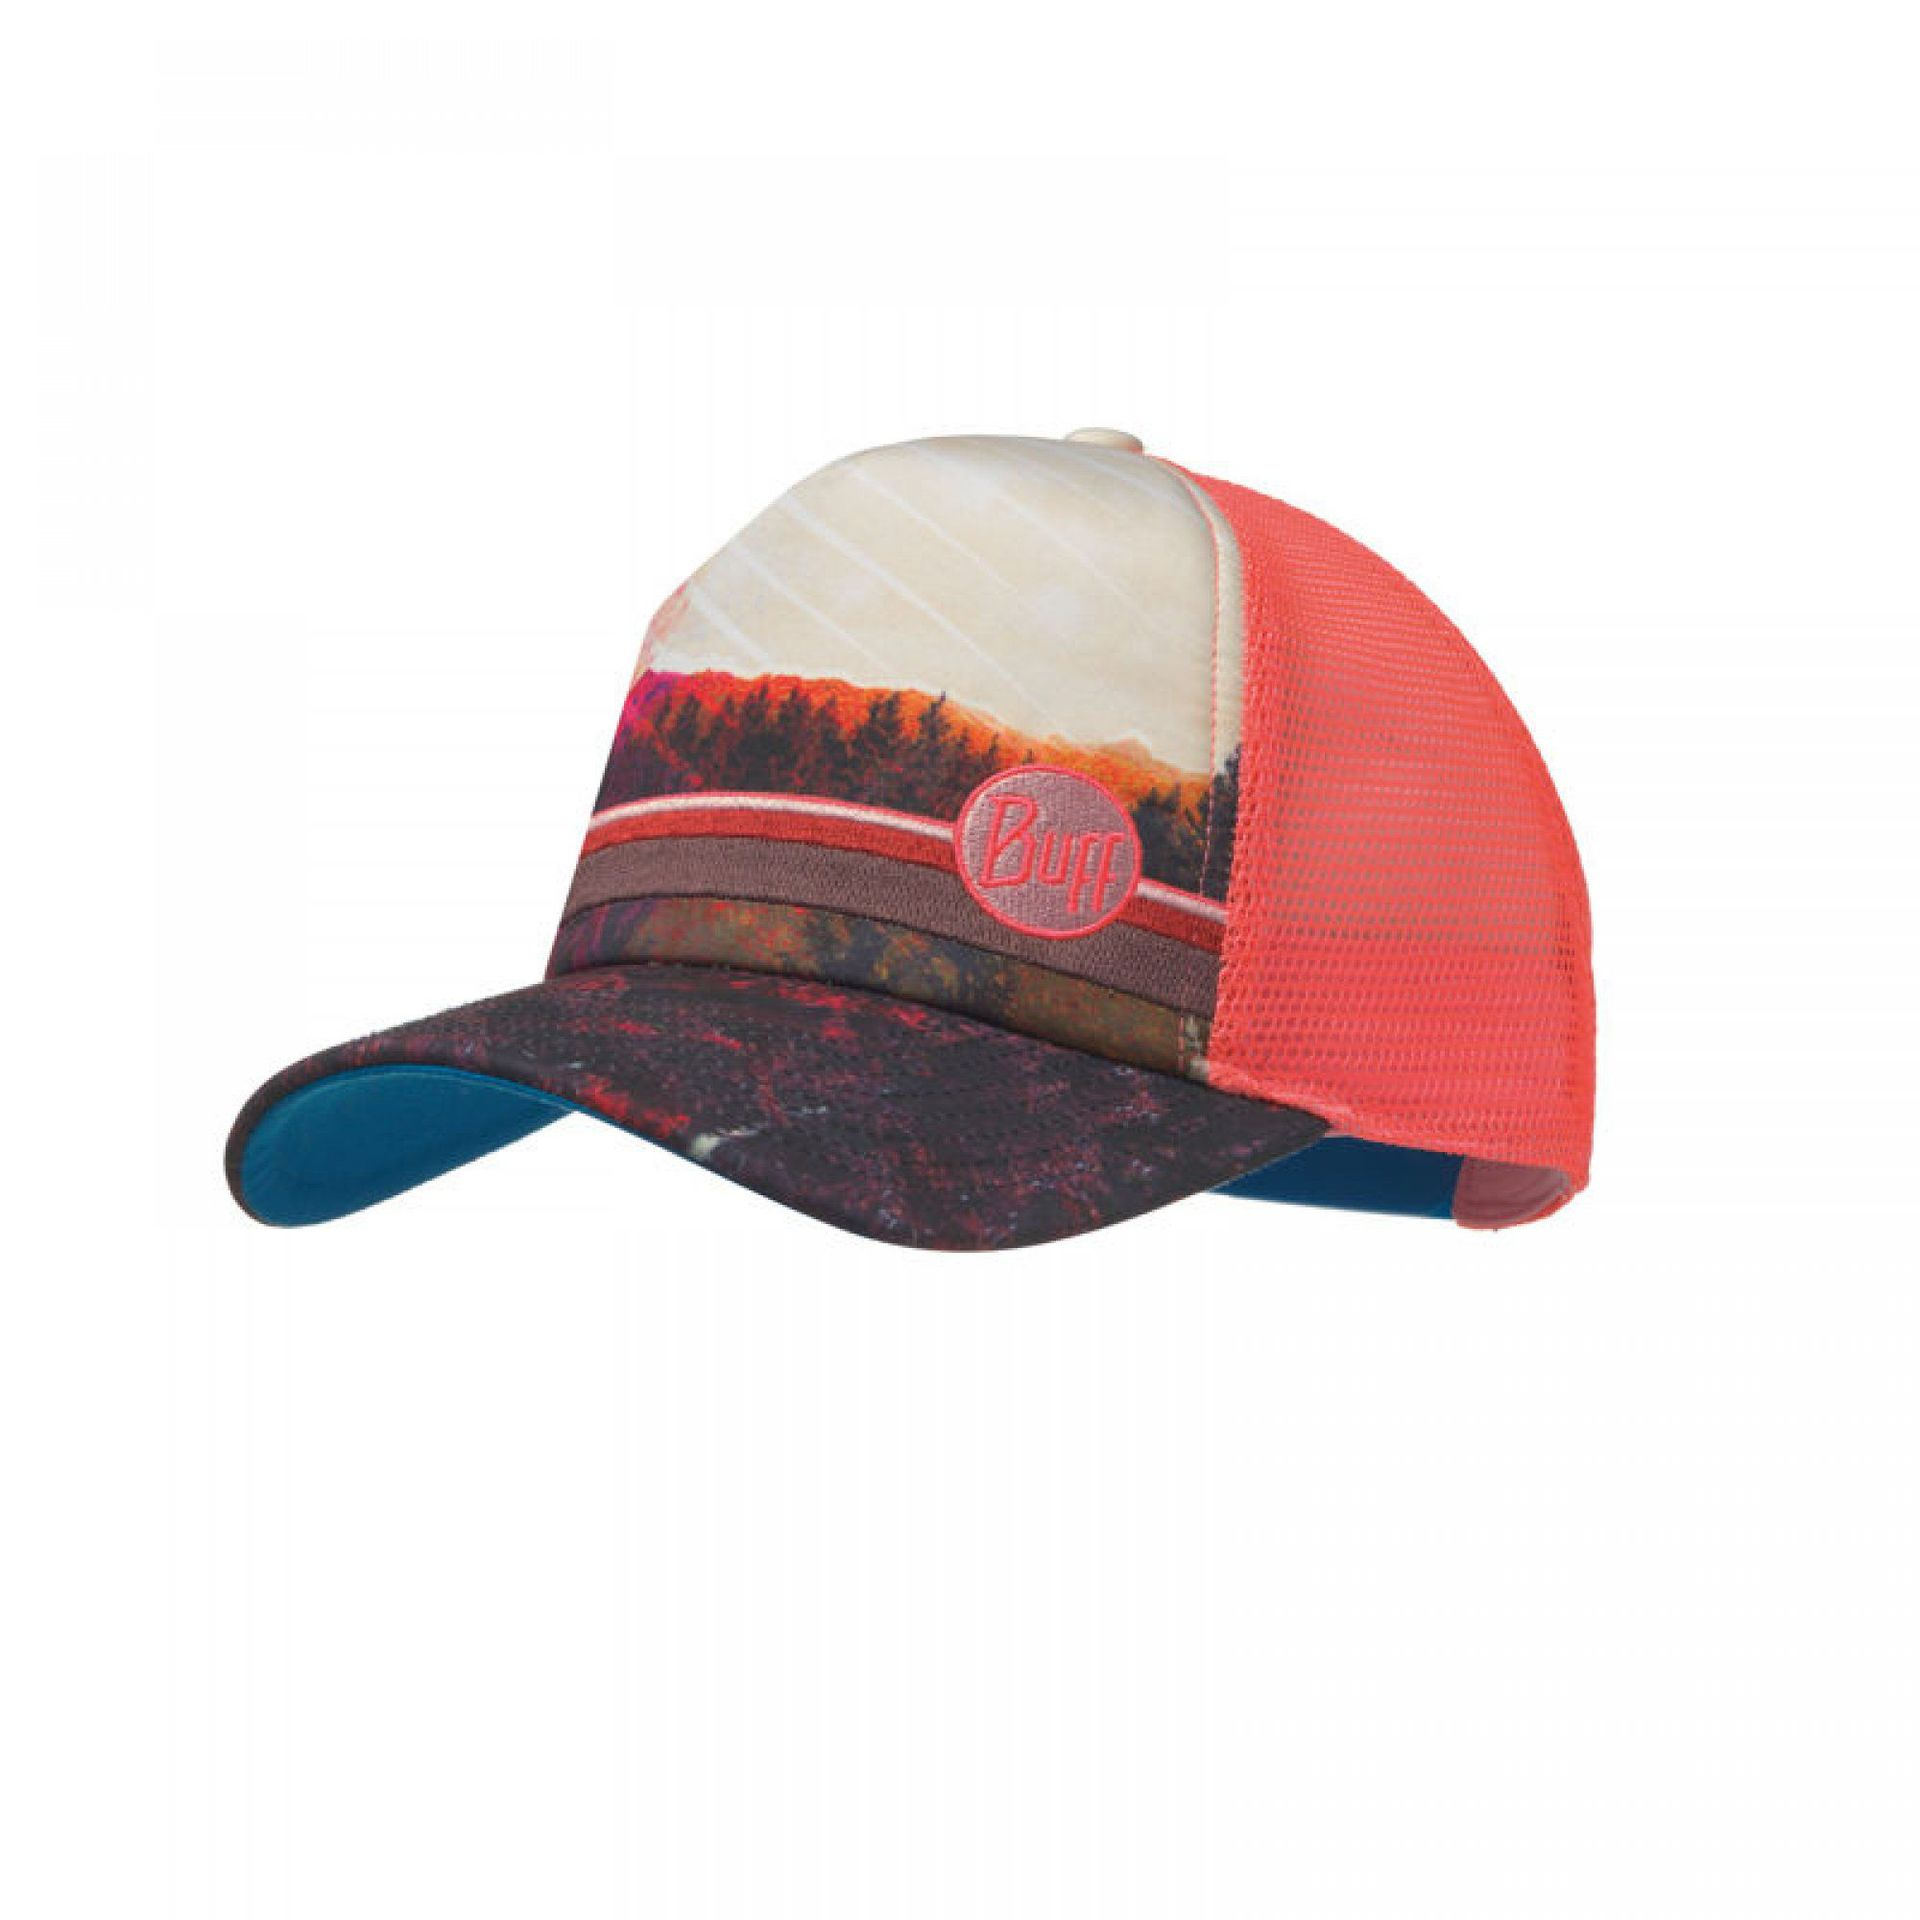 CZAPKA Z DASZKIEM BUFF  TRUCKER COLLAGE MULTI PINK